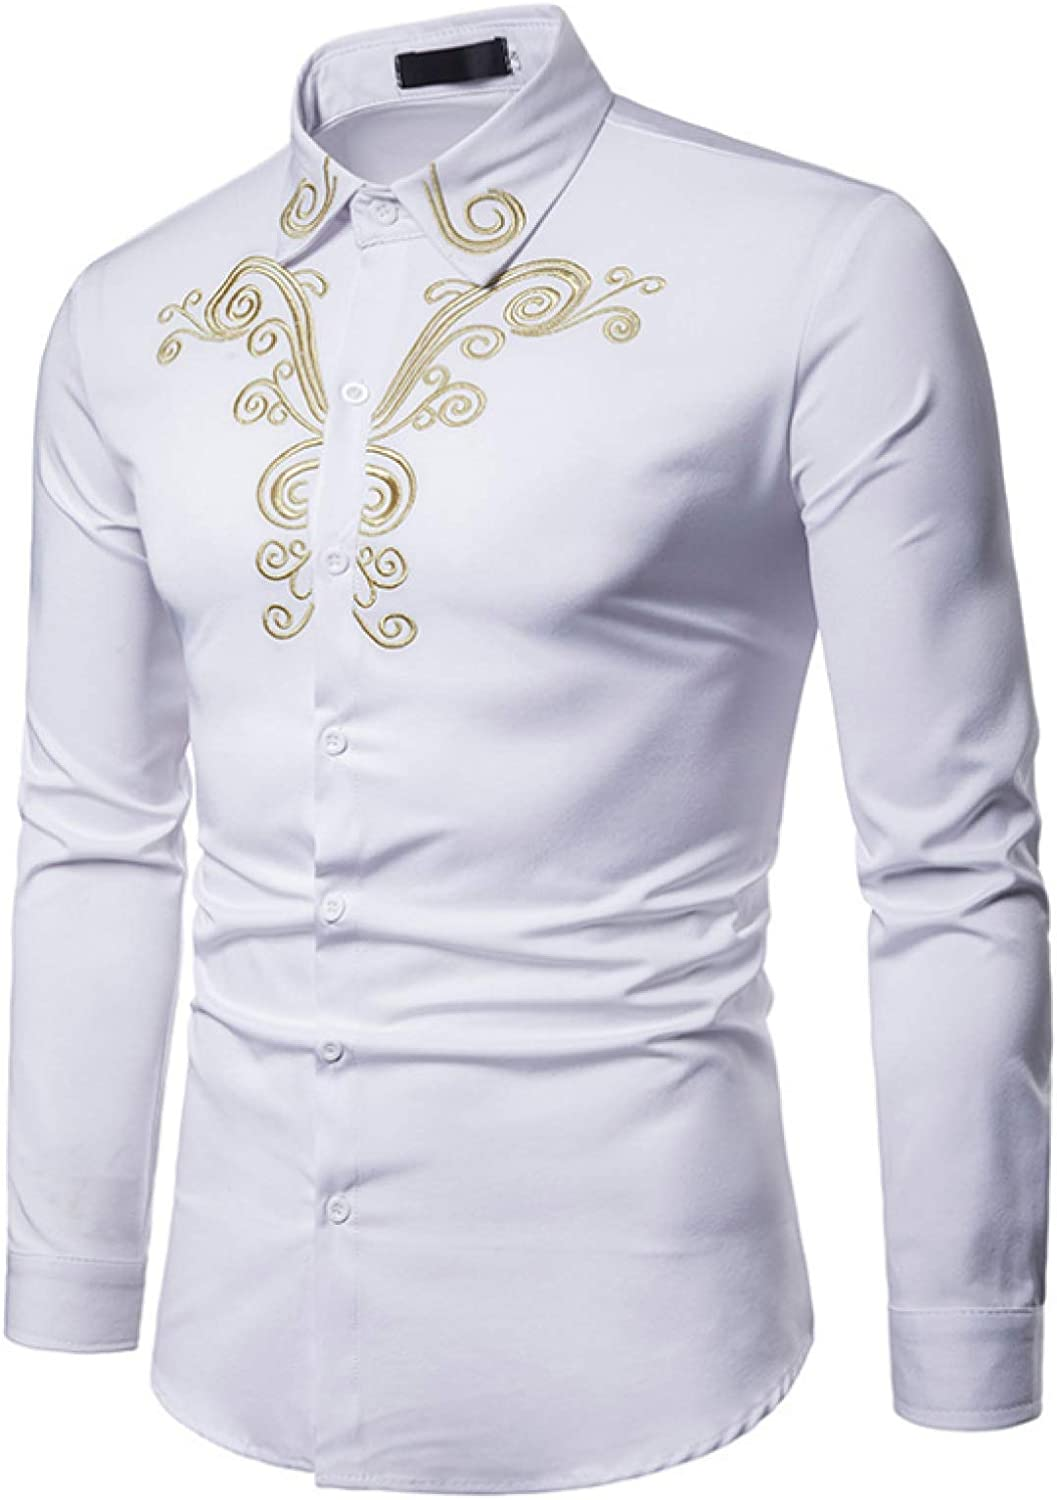 Men's Trendy Embroidered Max 55% OFF Long Sleeve Fit Slim Fashion Spring new work Shirt Clas